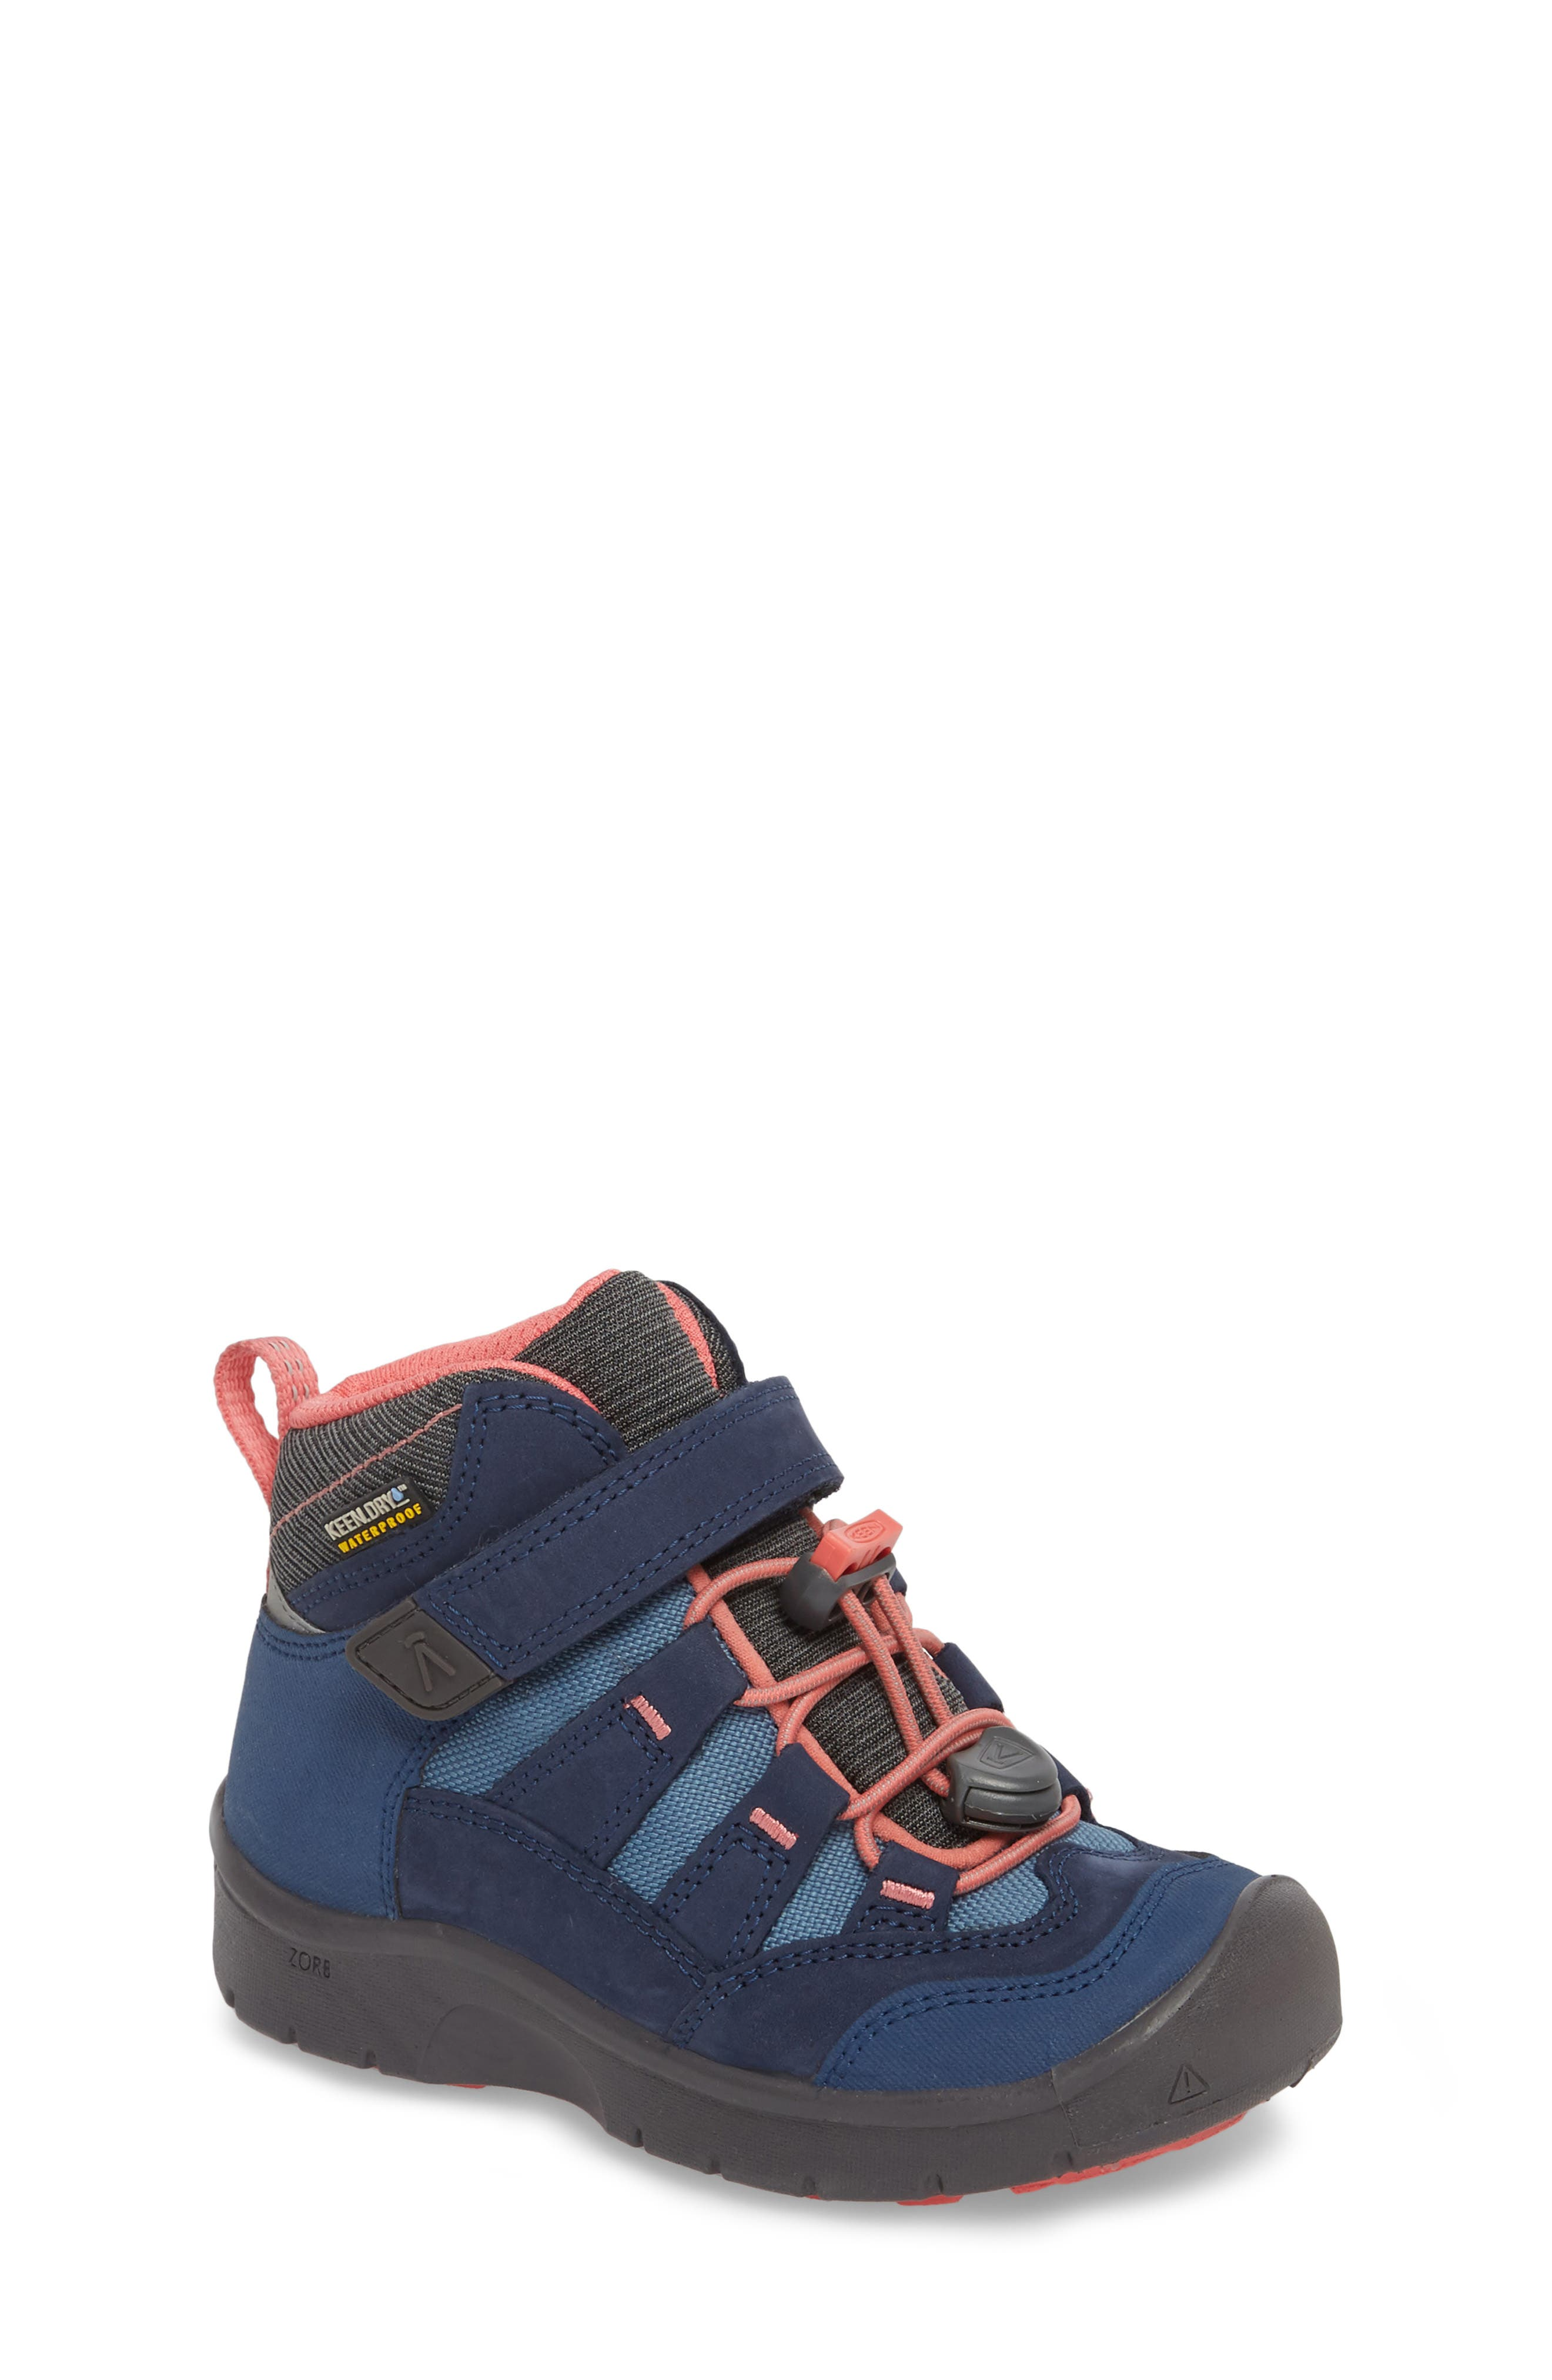 Hikeport Strap Waterproof Mid Boot,                         Main,                         color, Dress Blues/ Sugar Coral